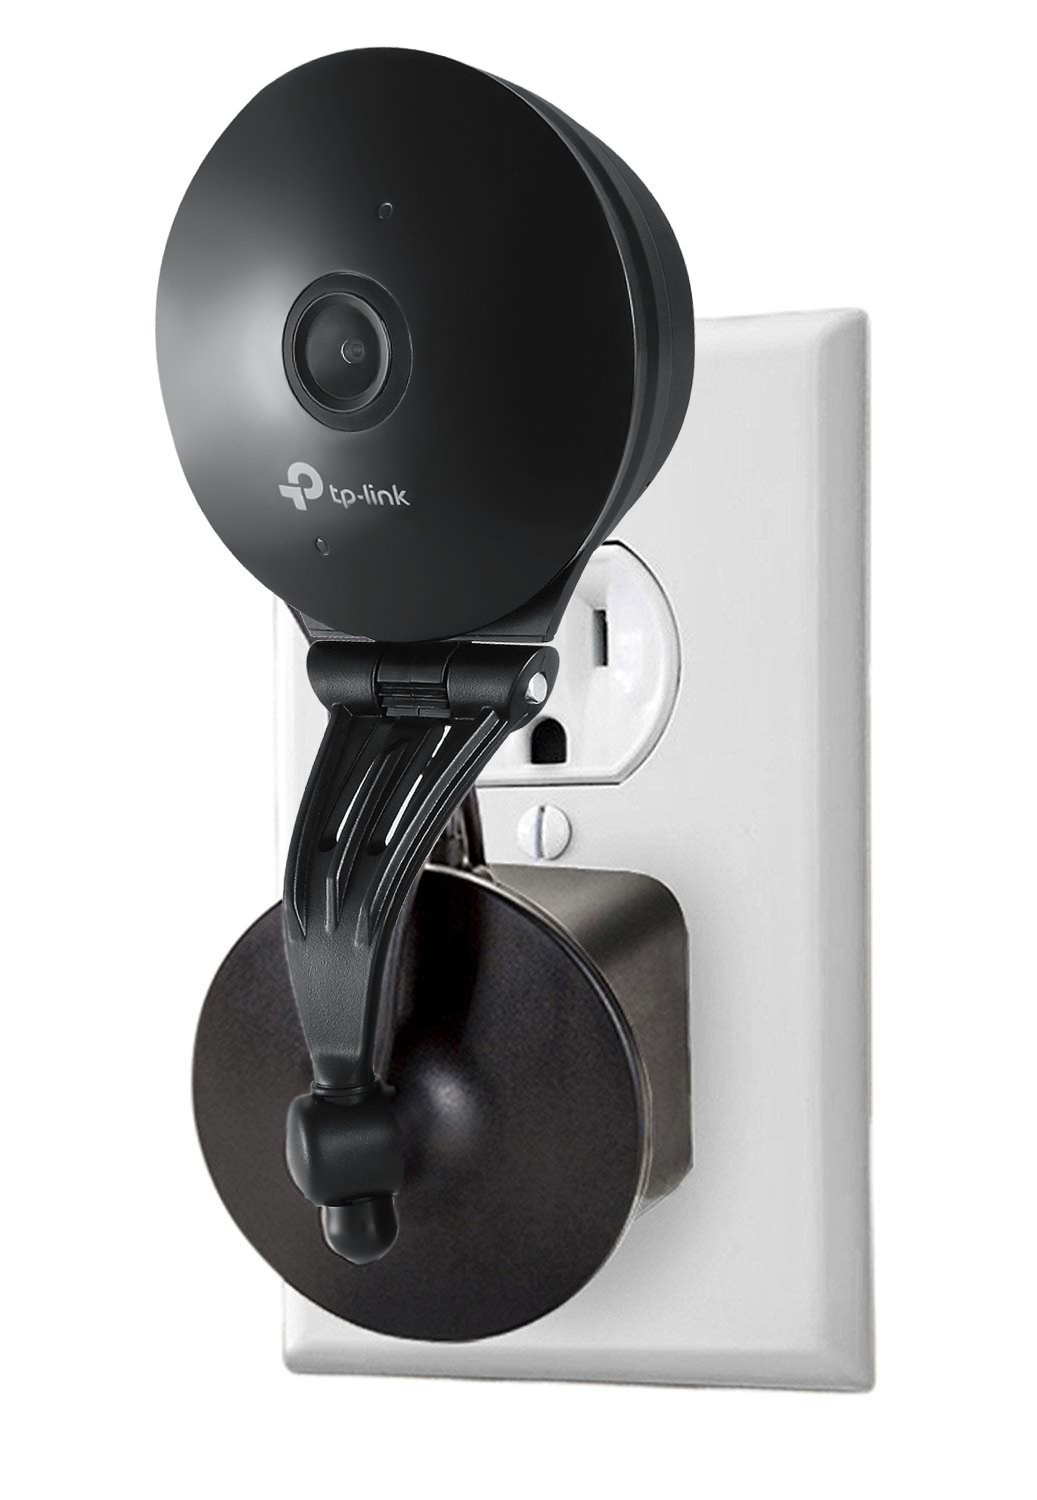 AC Outlet Mount Compatible with Kasa Cam 1080p Smart Home Indoor Security Camera - Flexible Placement Option for Your Kasa Cam